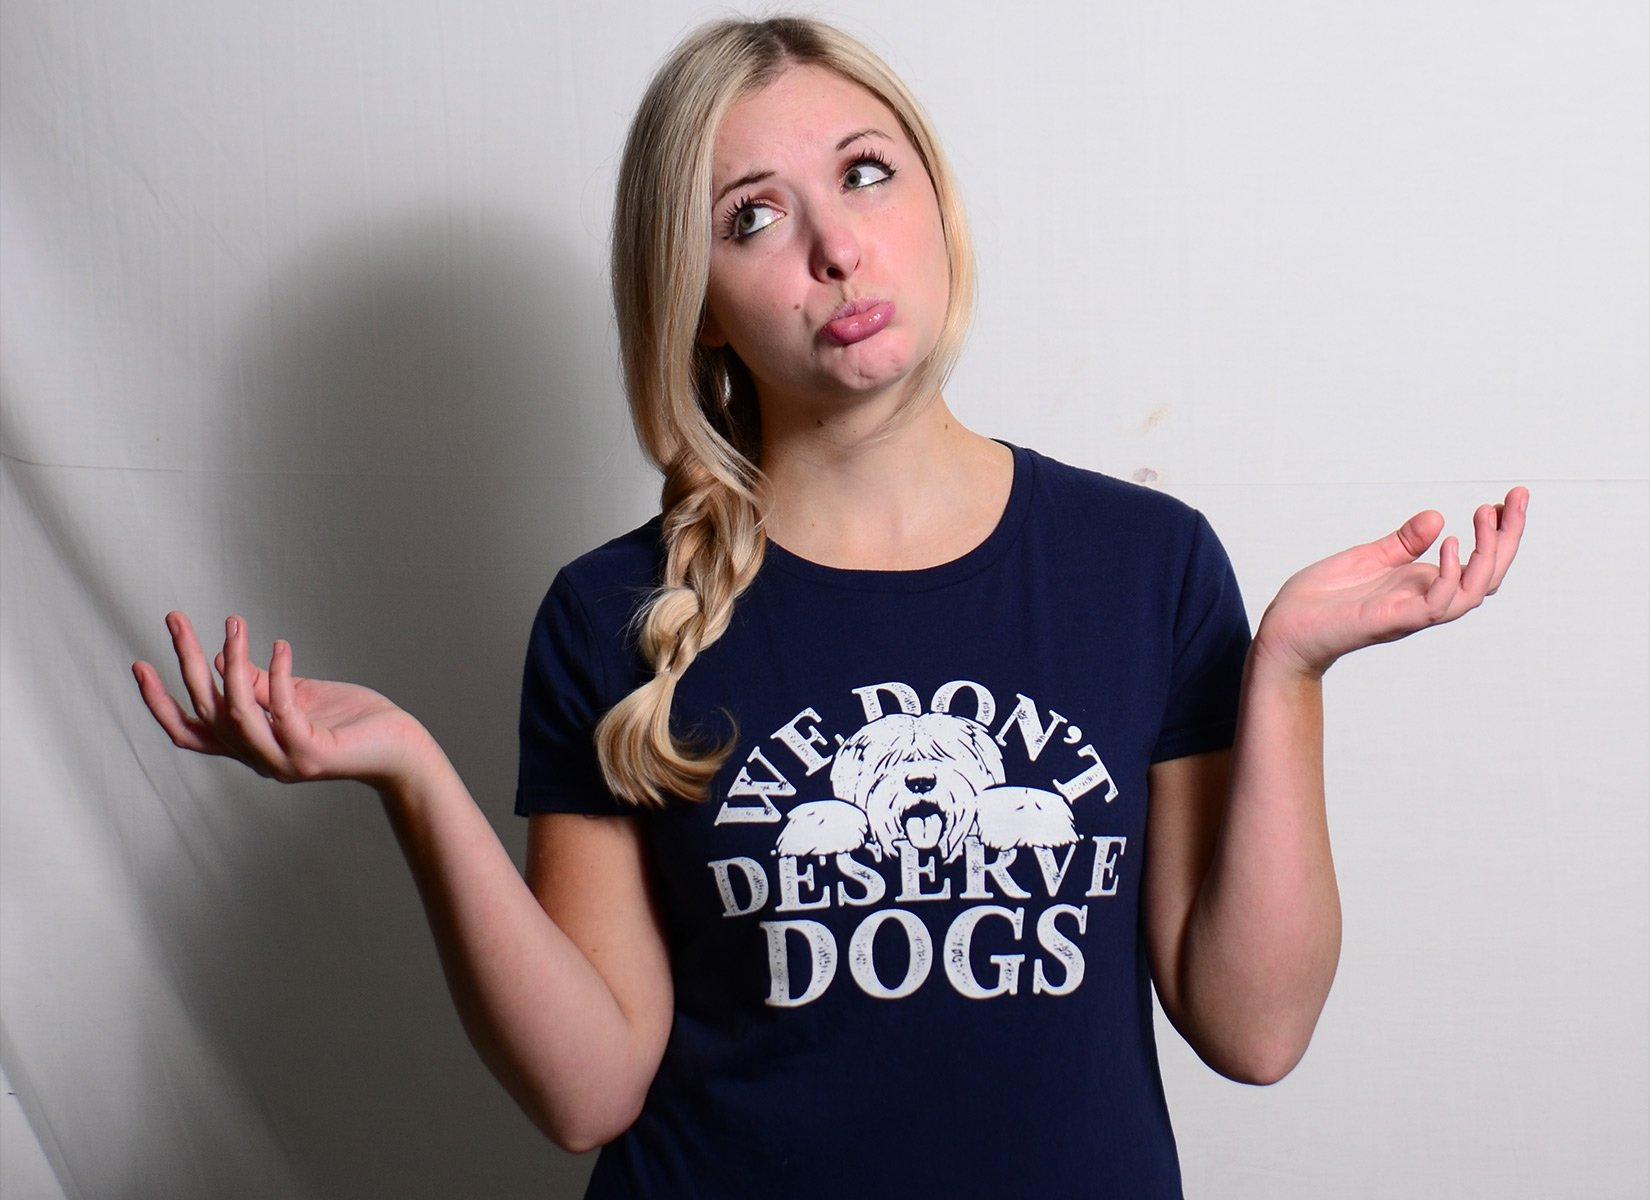 We Don't Deserve Dogs on Womens T-Shirt